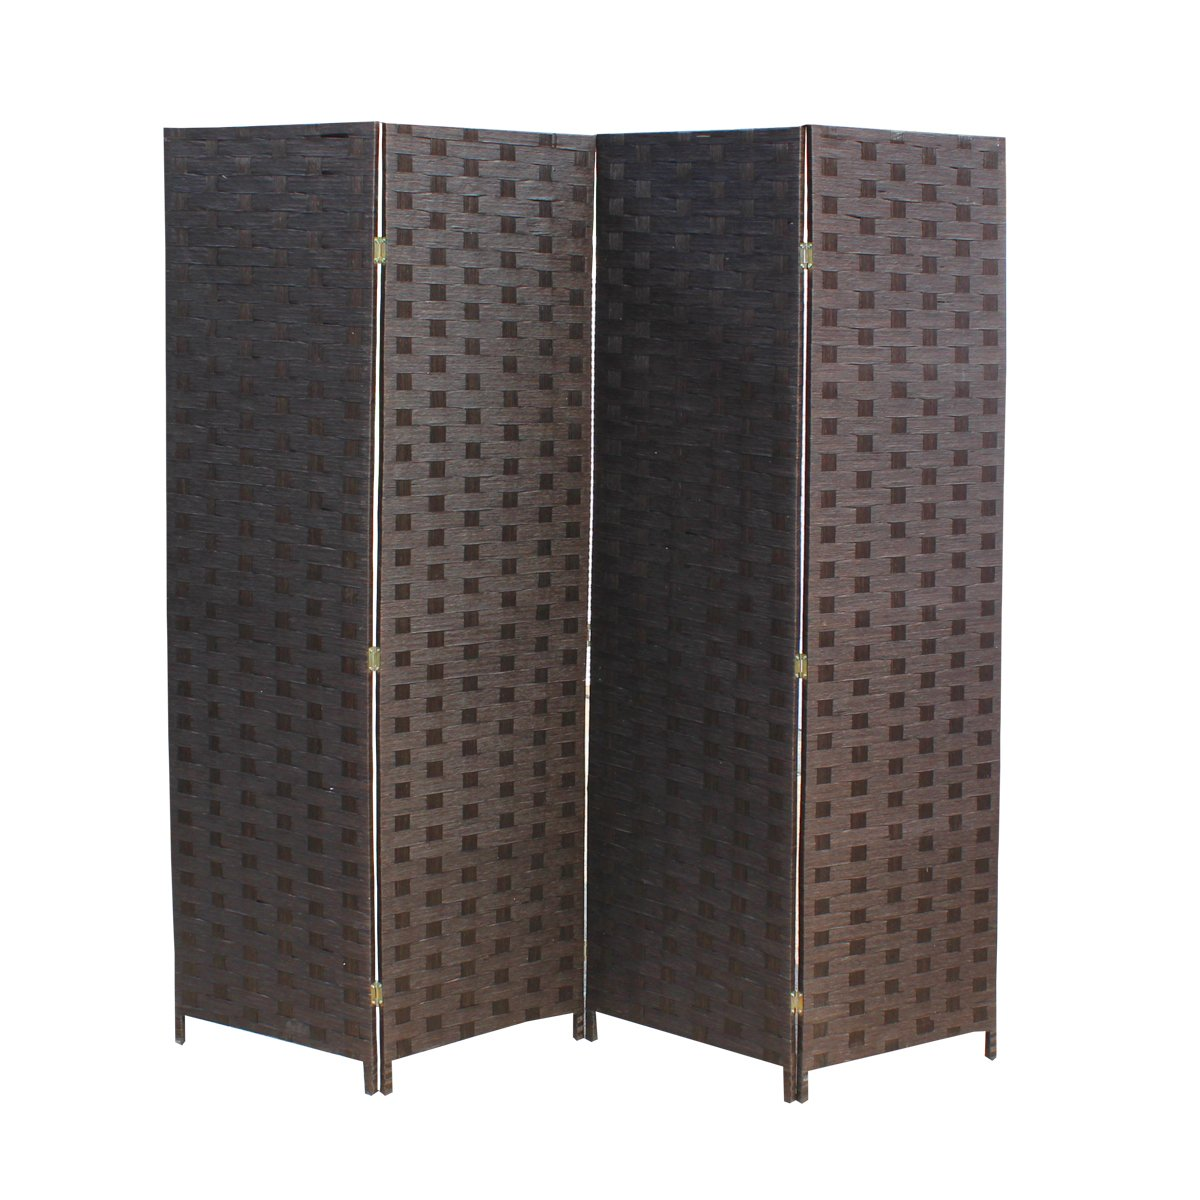 BestMassage 4 Panel Wood Mesh Woven Design Folding Wooden Screen Room Divider